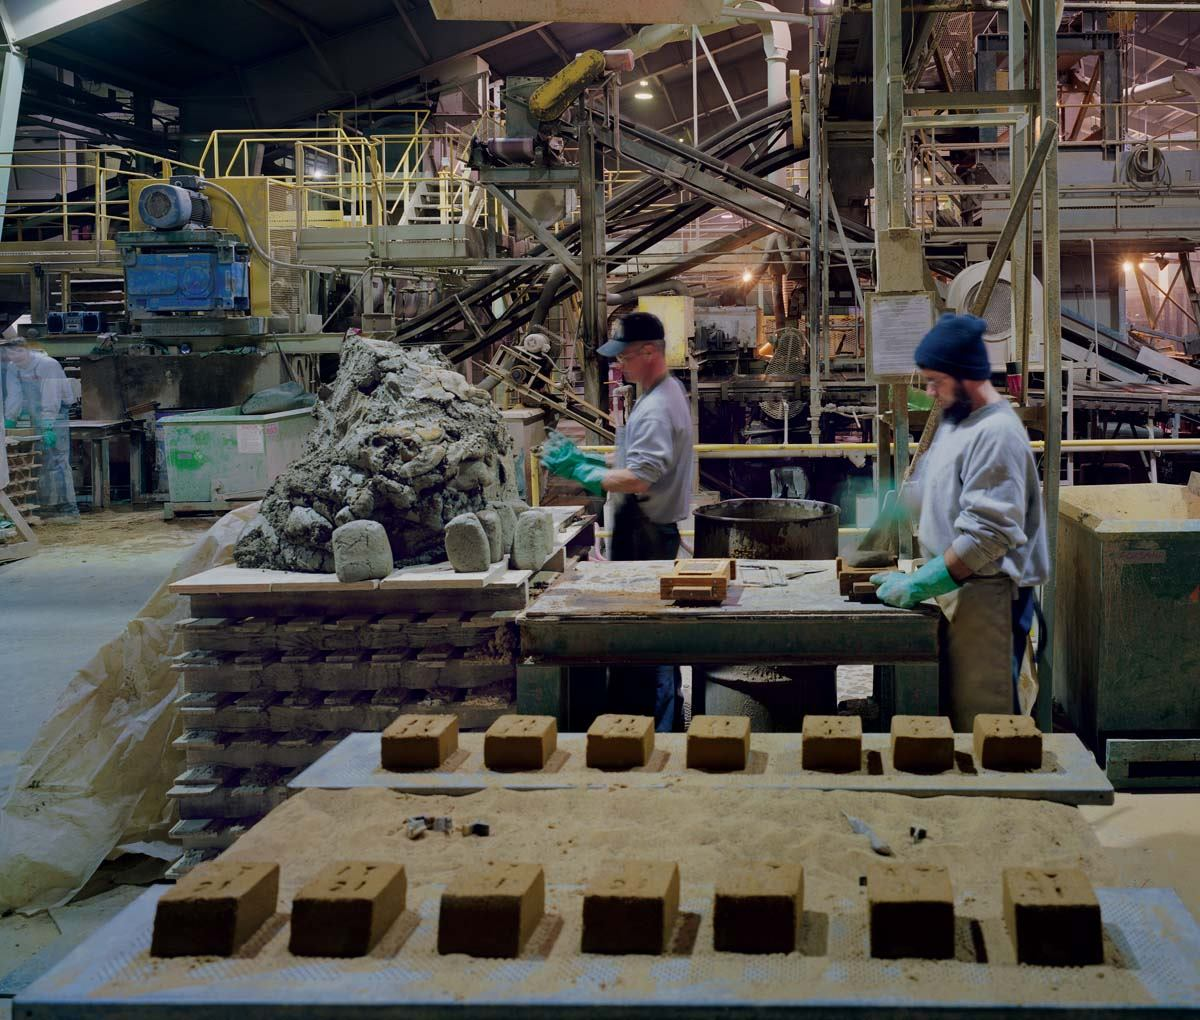 Quality Bricks: A Quality Brick Product Depends On Brick Ingredients